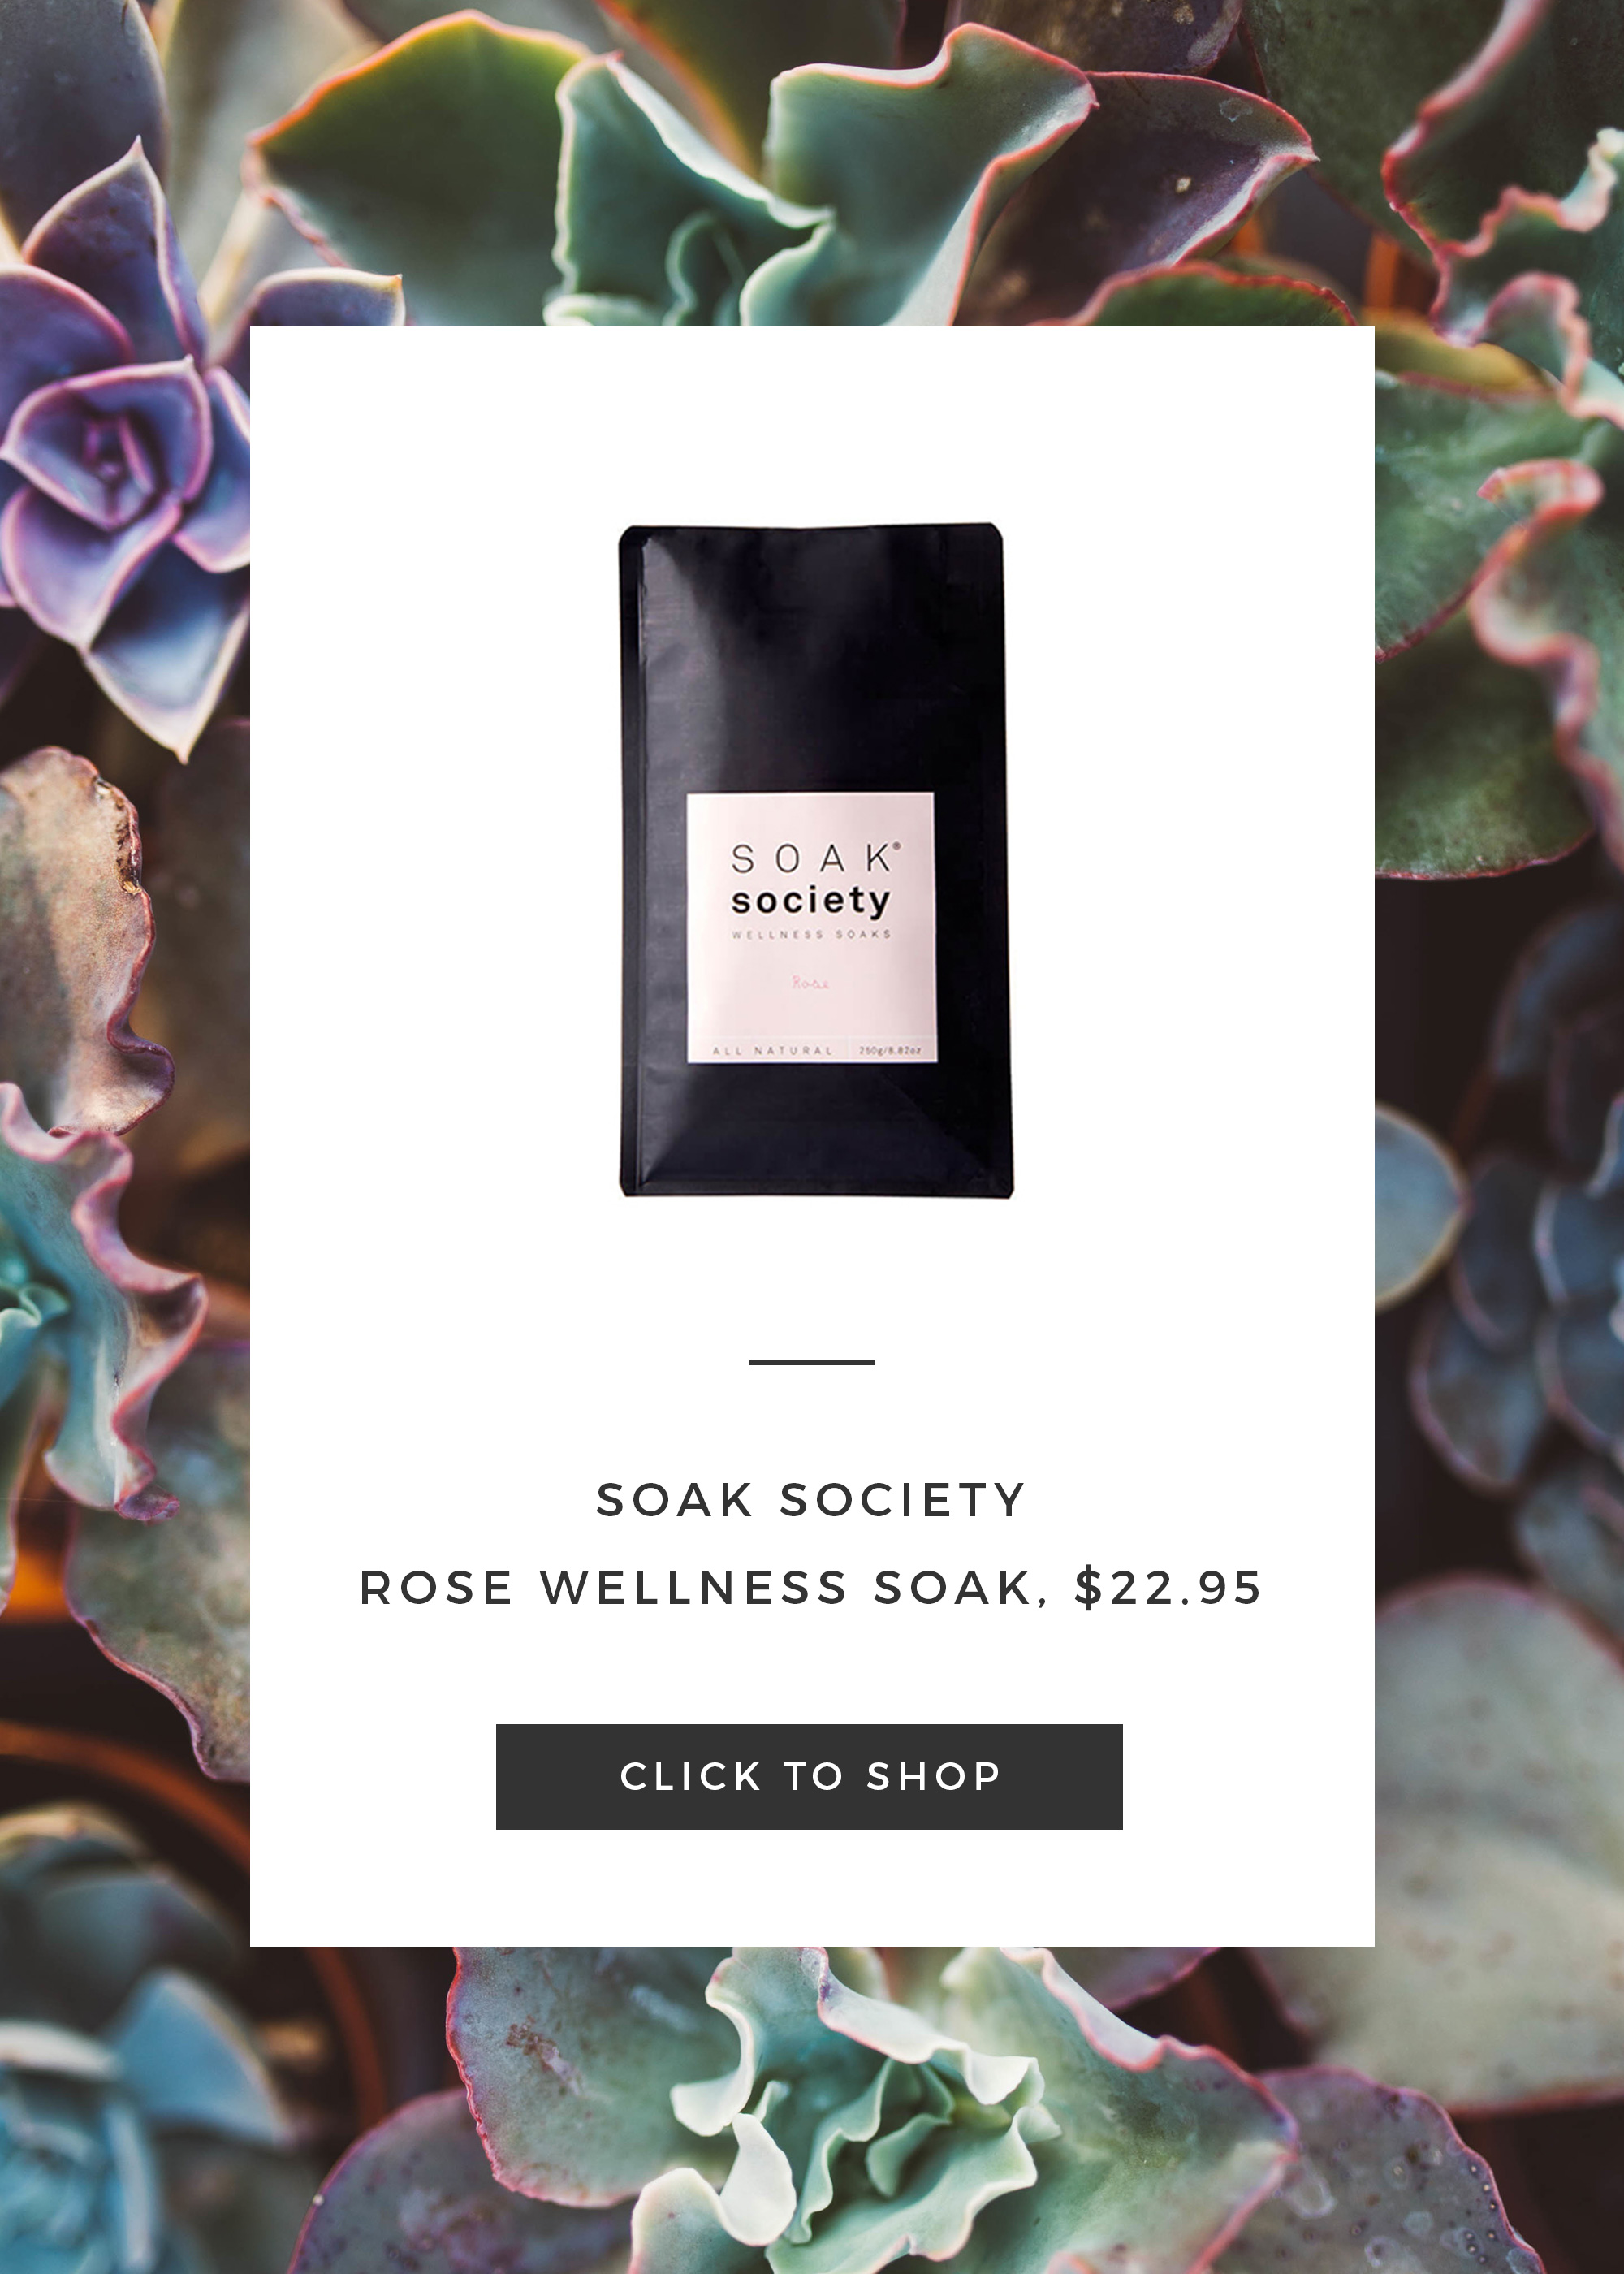 soak society valentine's day